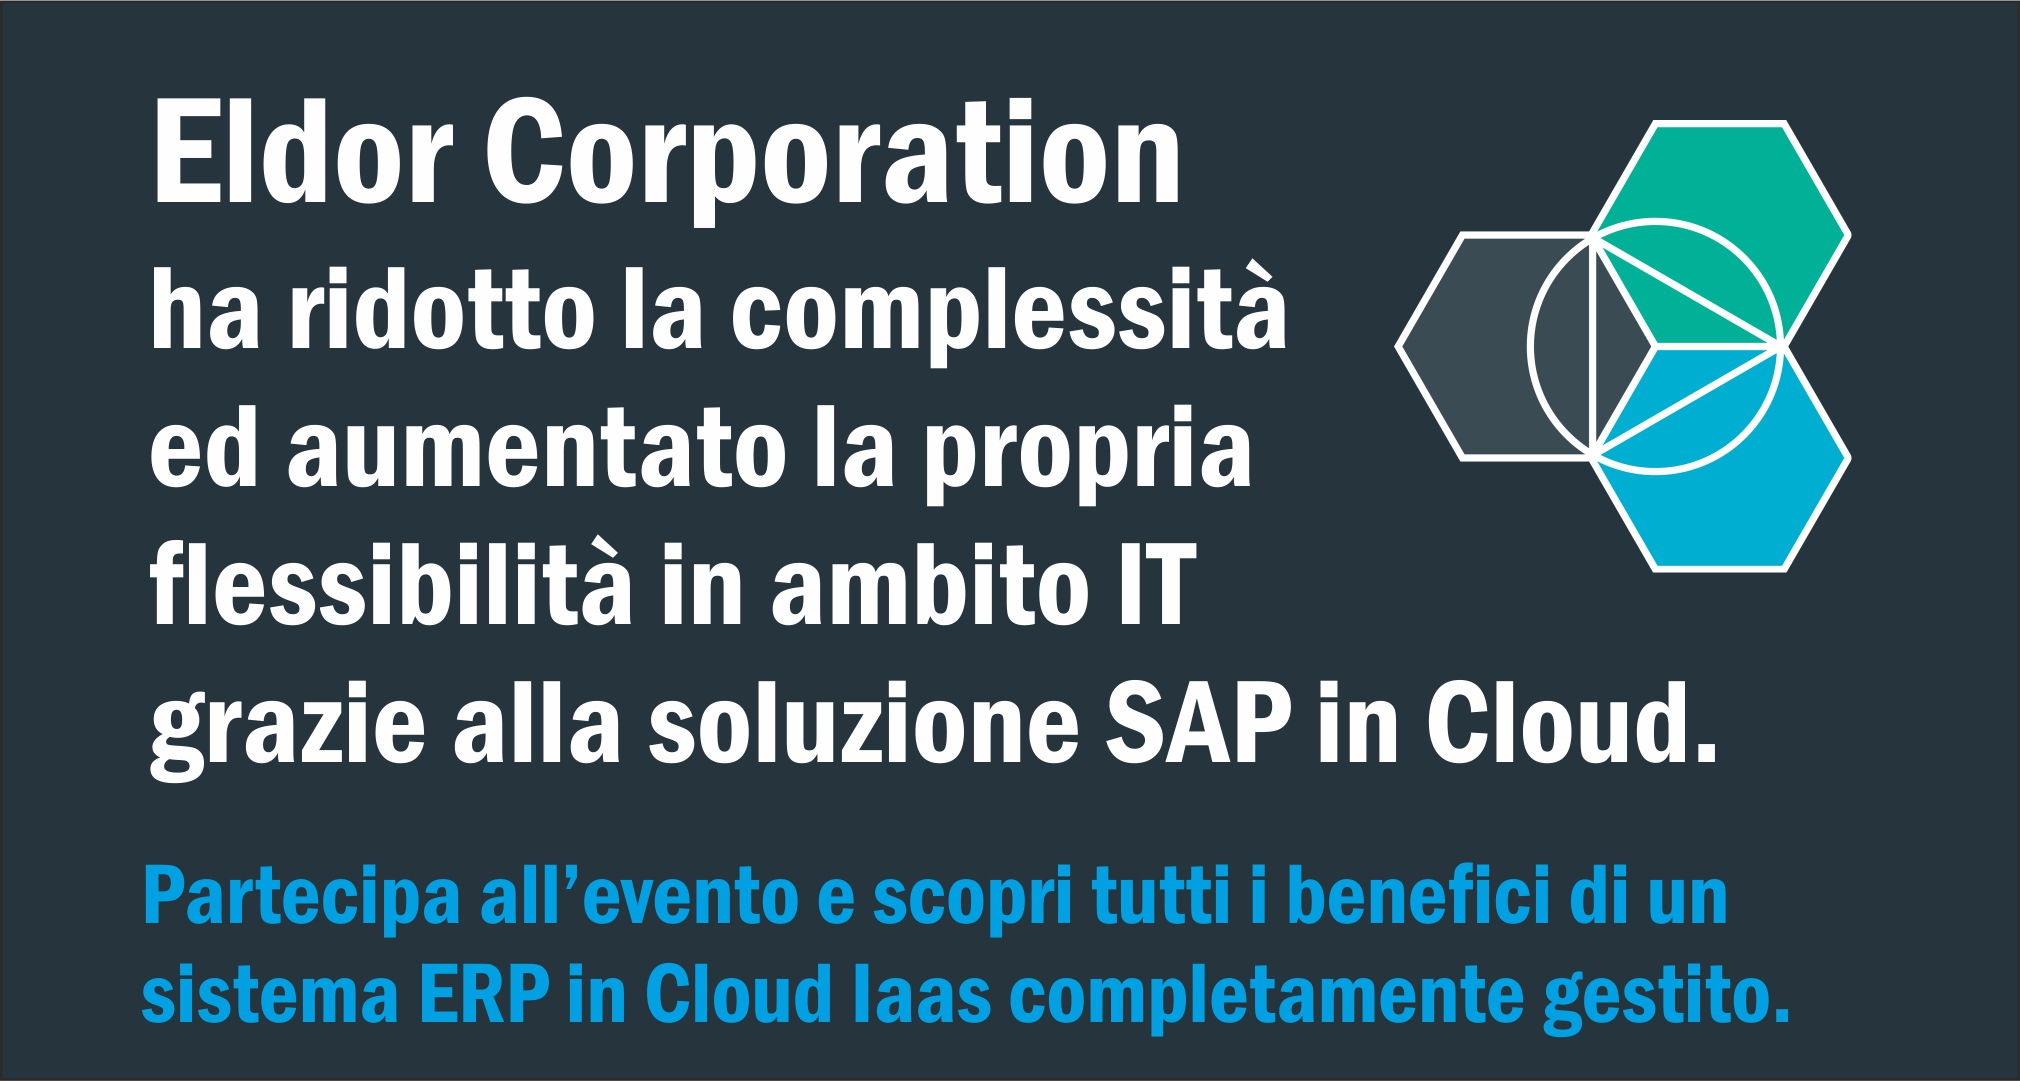 Sap in Cloud Eldor4